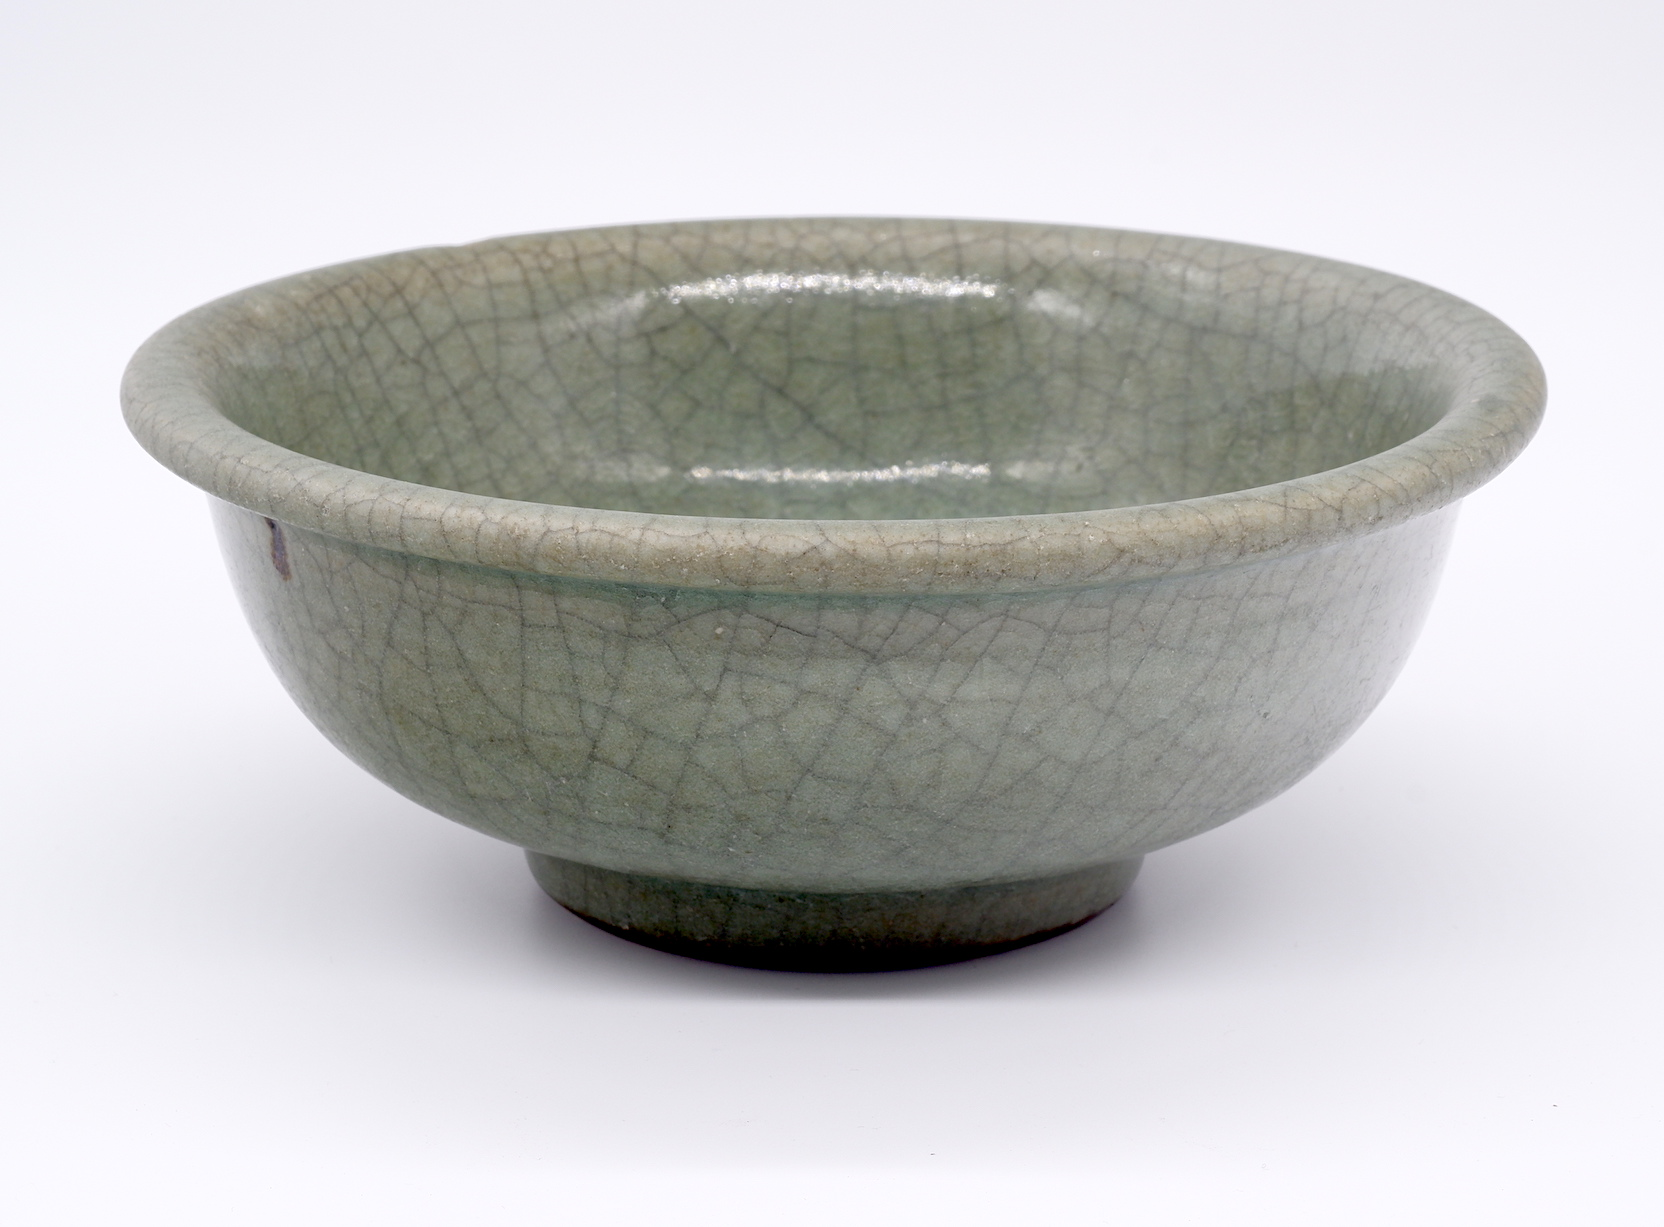 'Thickly Potted Celadon Bowl with Iron Dressed Foot 19th Century or Earlier'